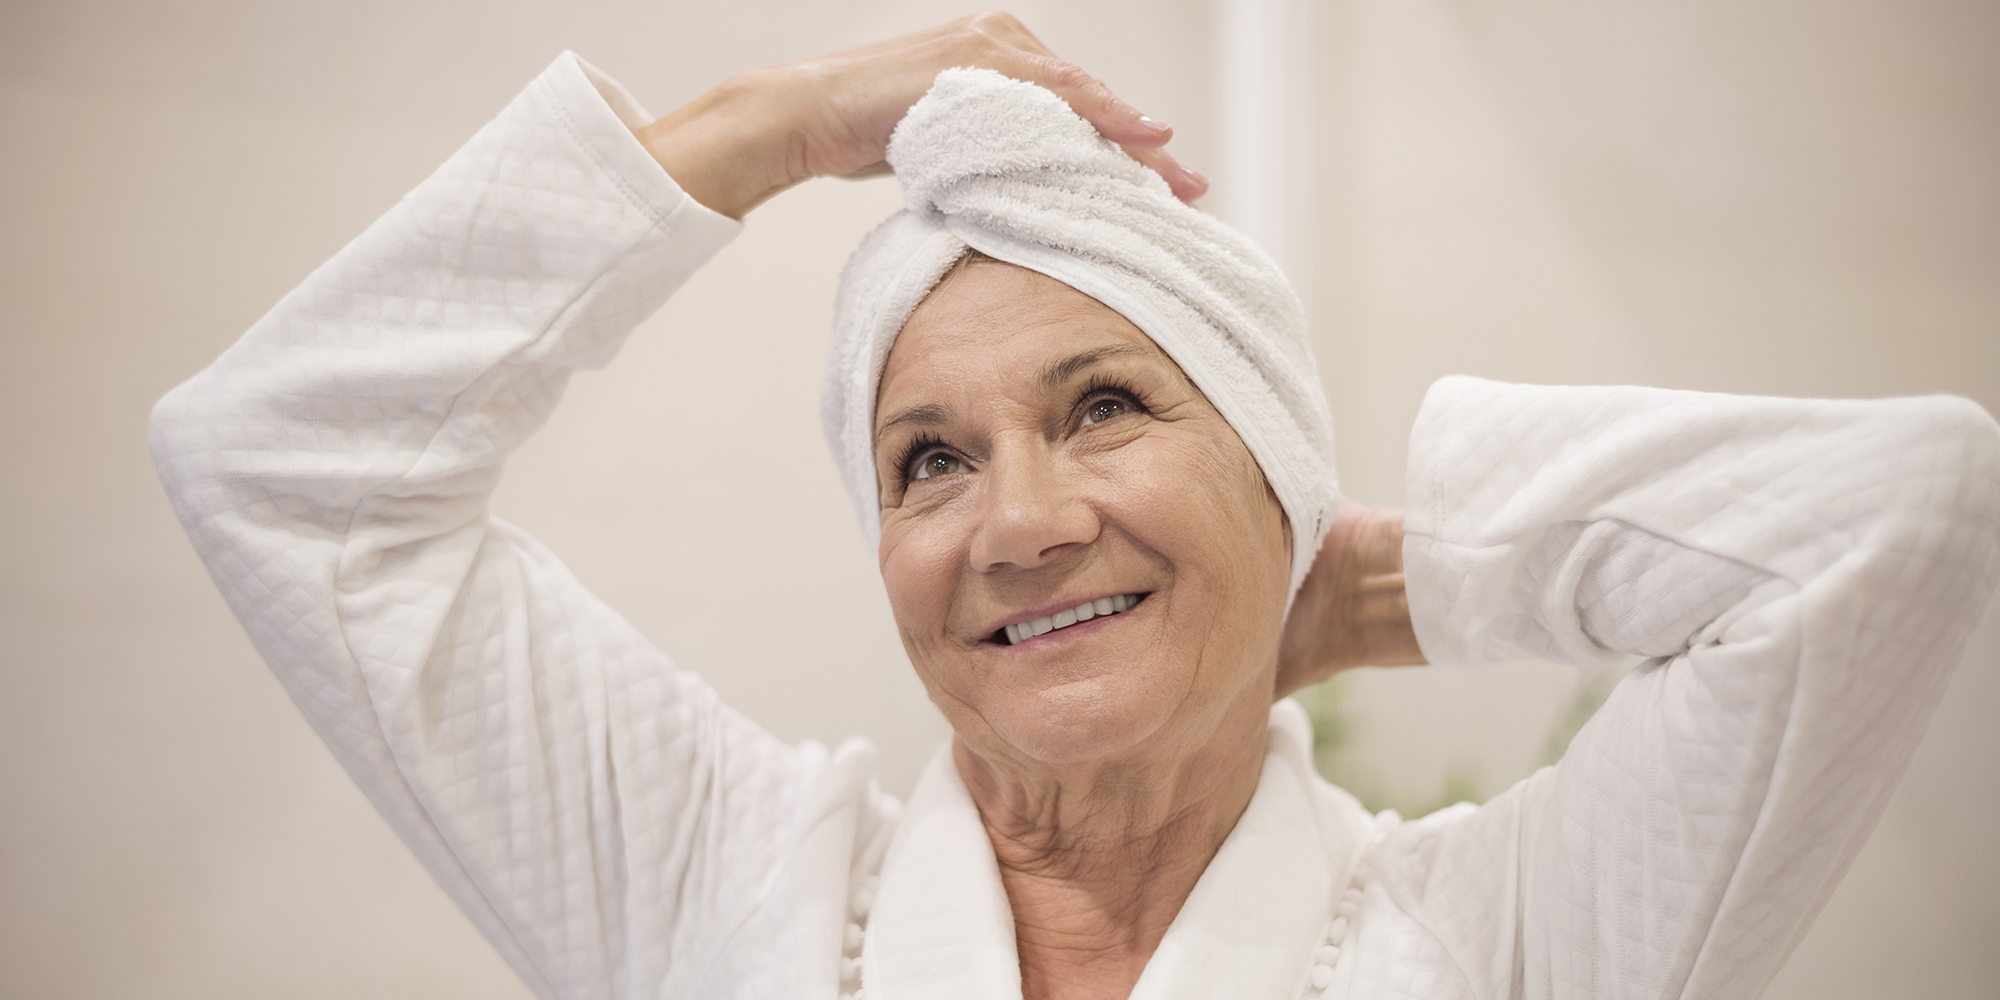 The trick to washing hair more effectively